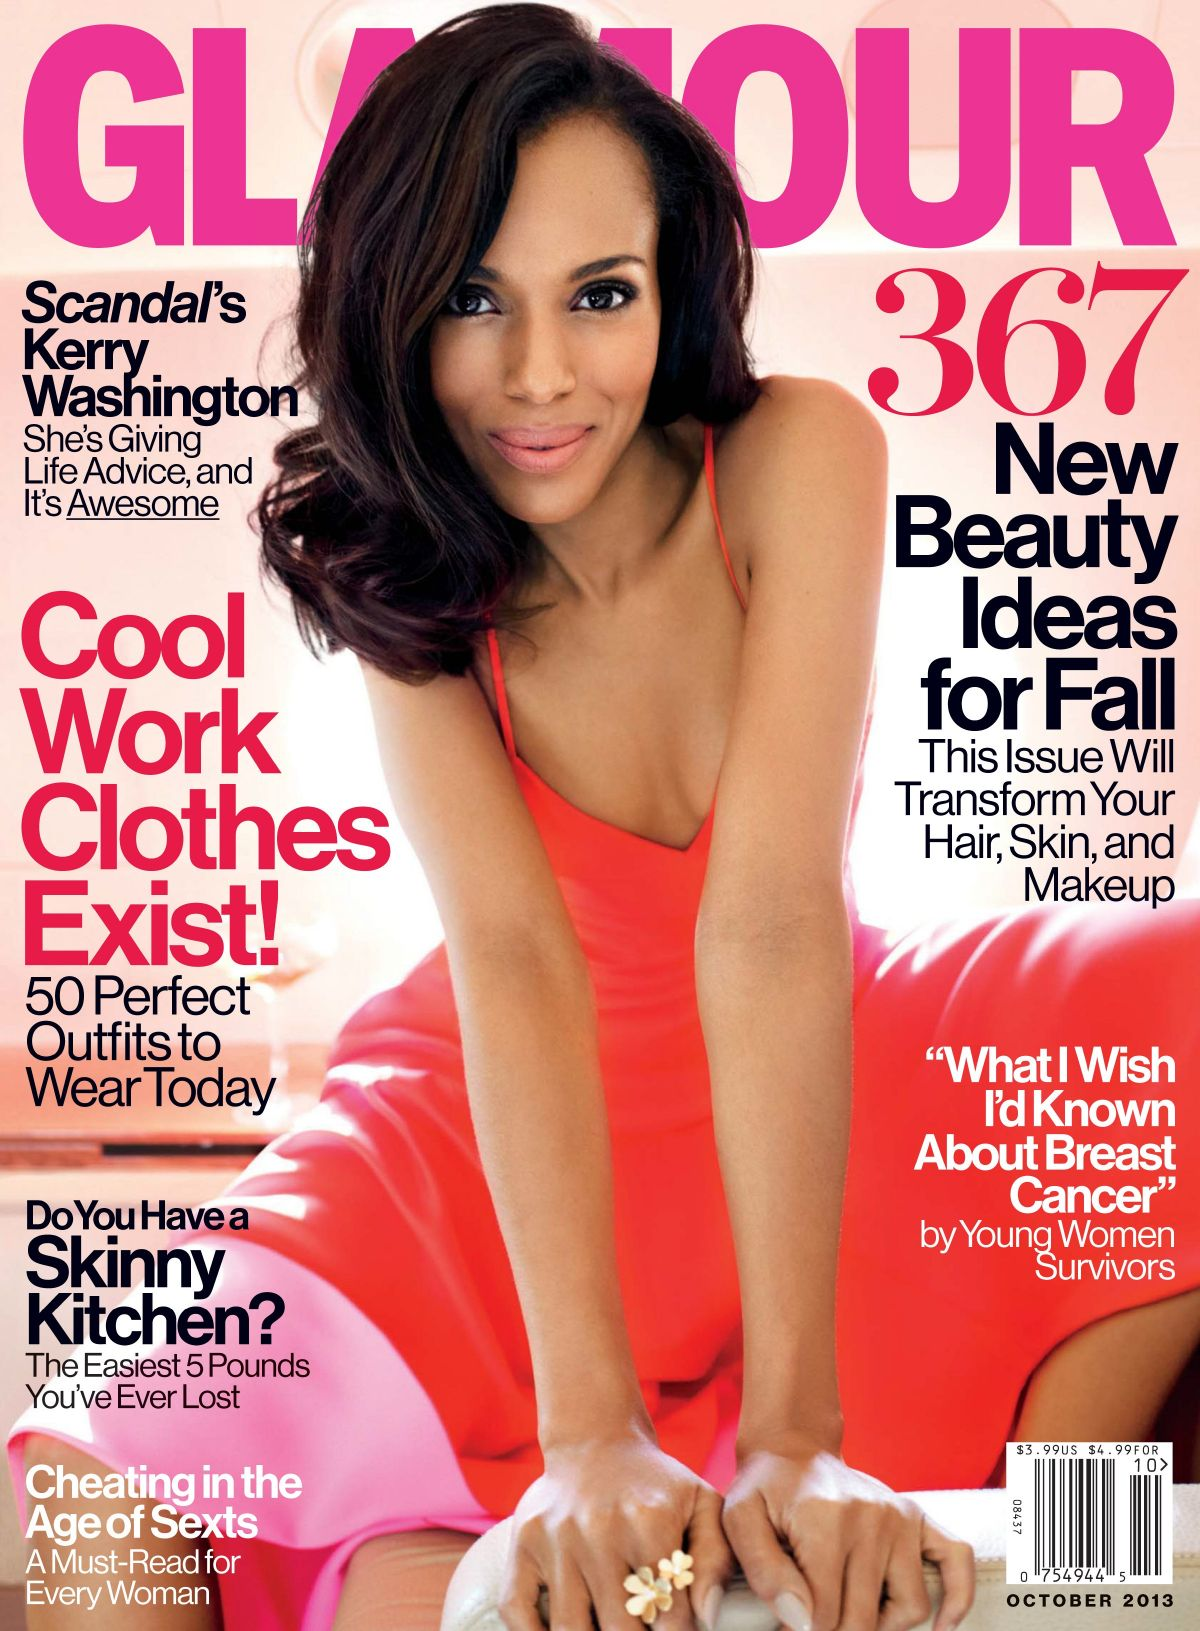 Kerry Washington On The Cover Of Glamour Magazine, October 2013